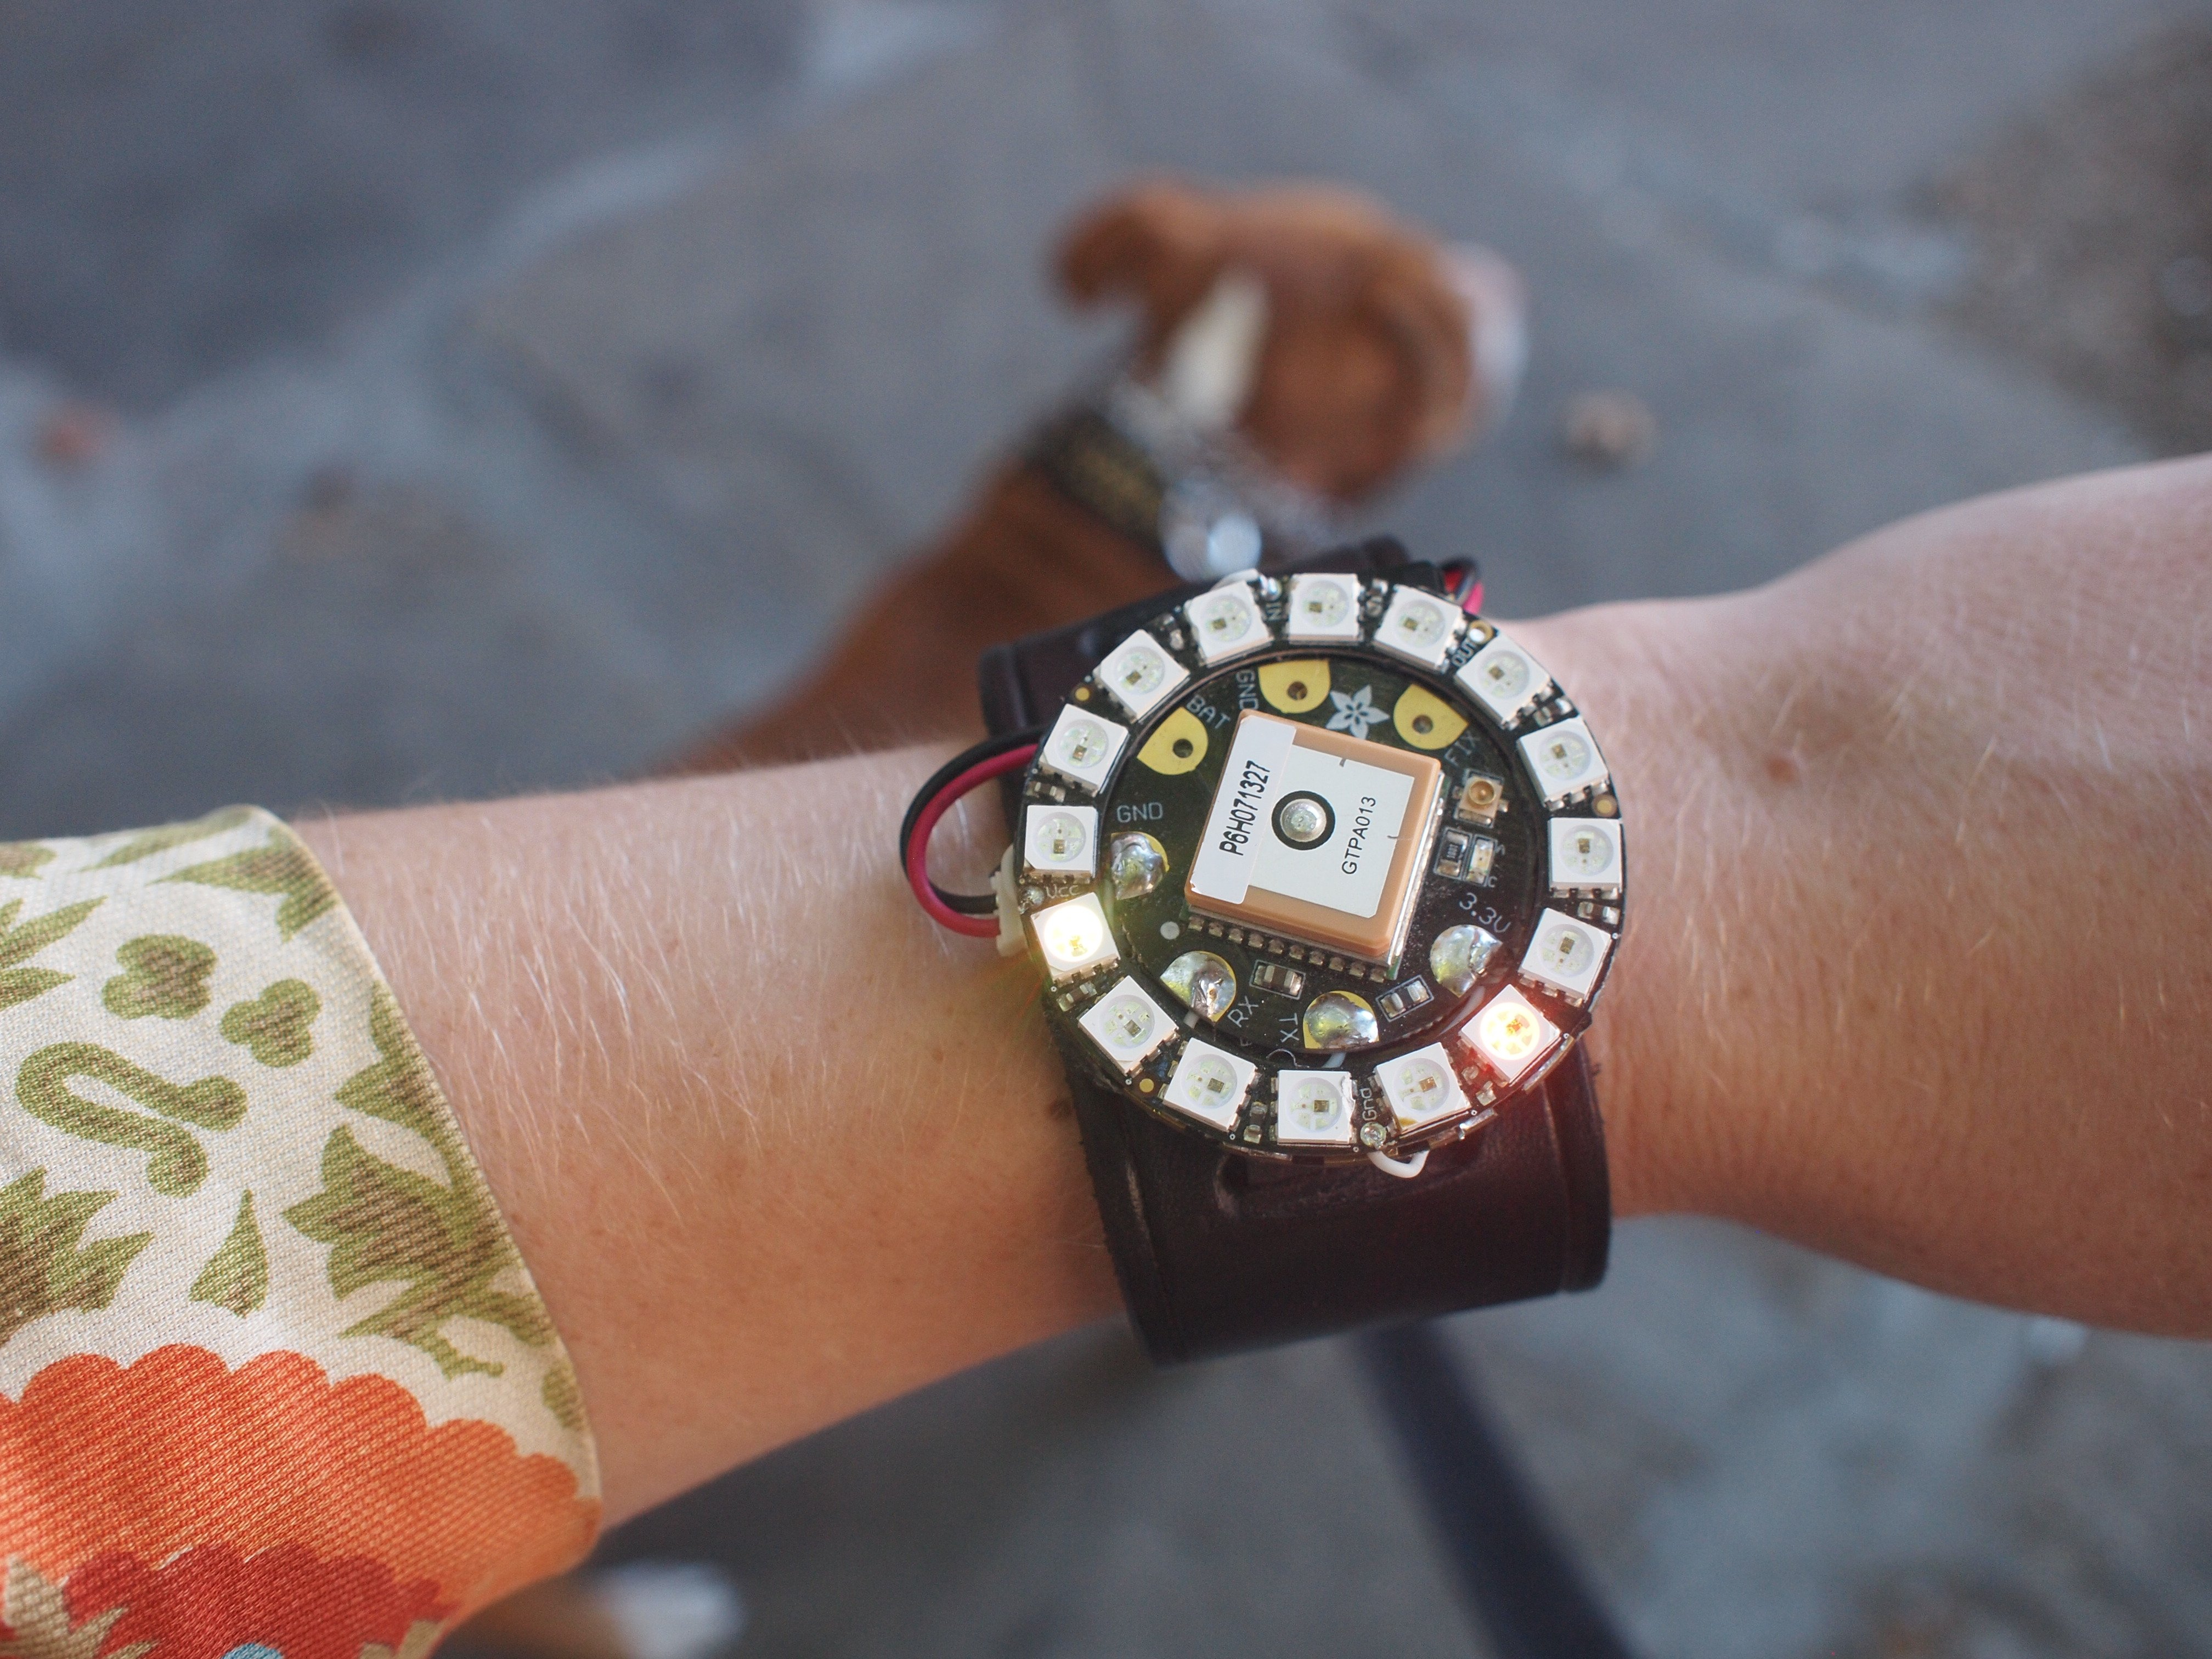 flora-geo-watch-timekeeping.JPG